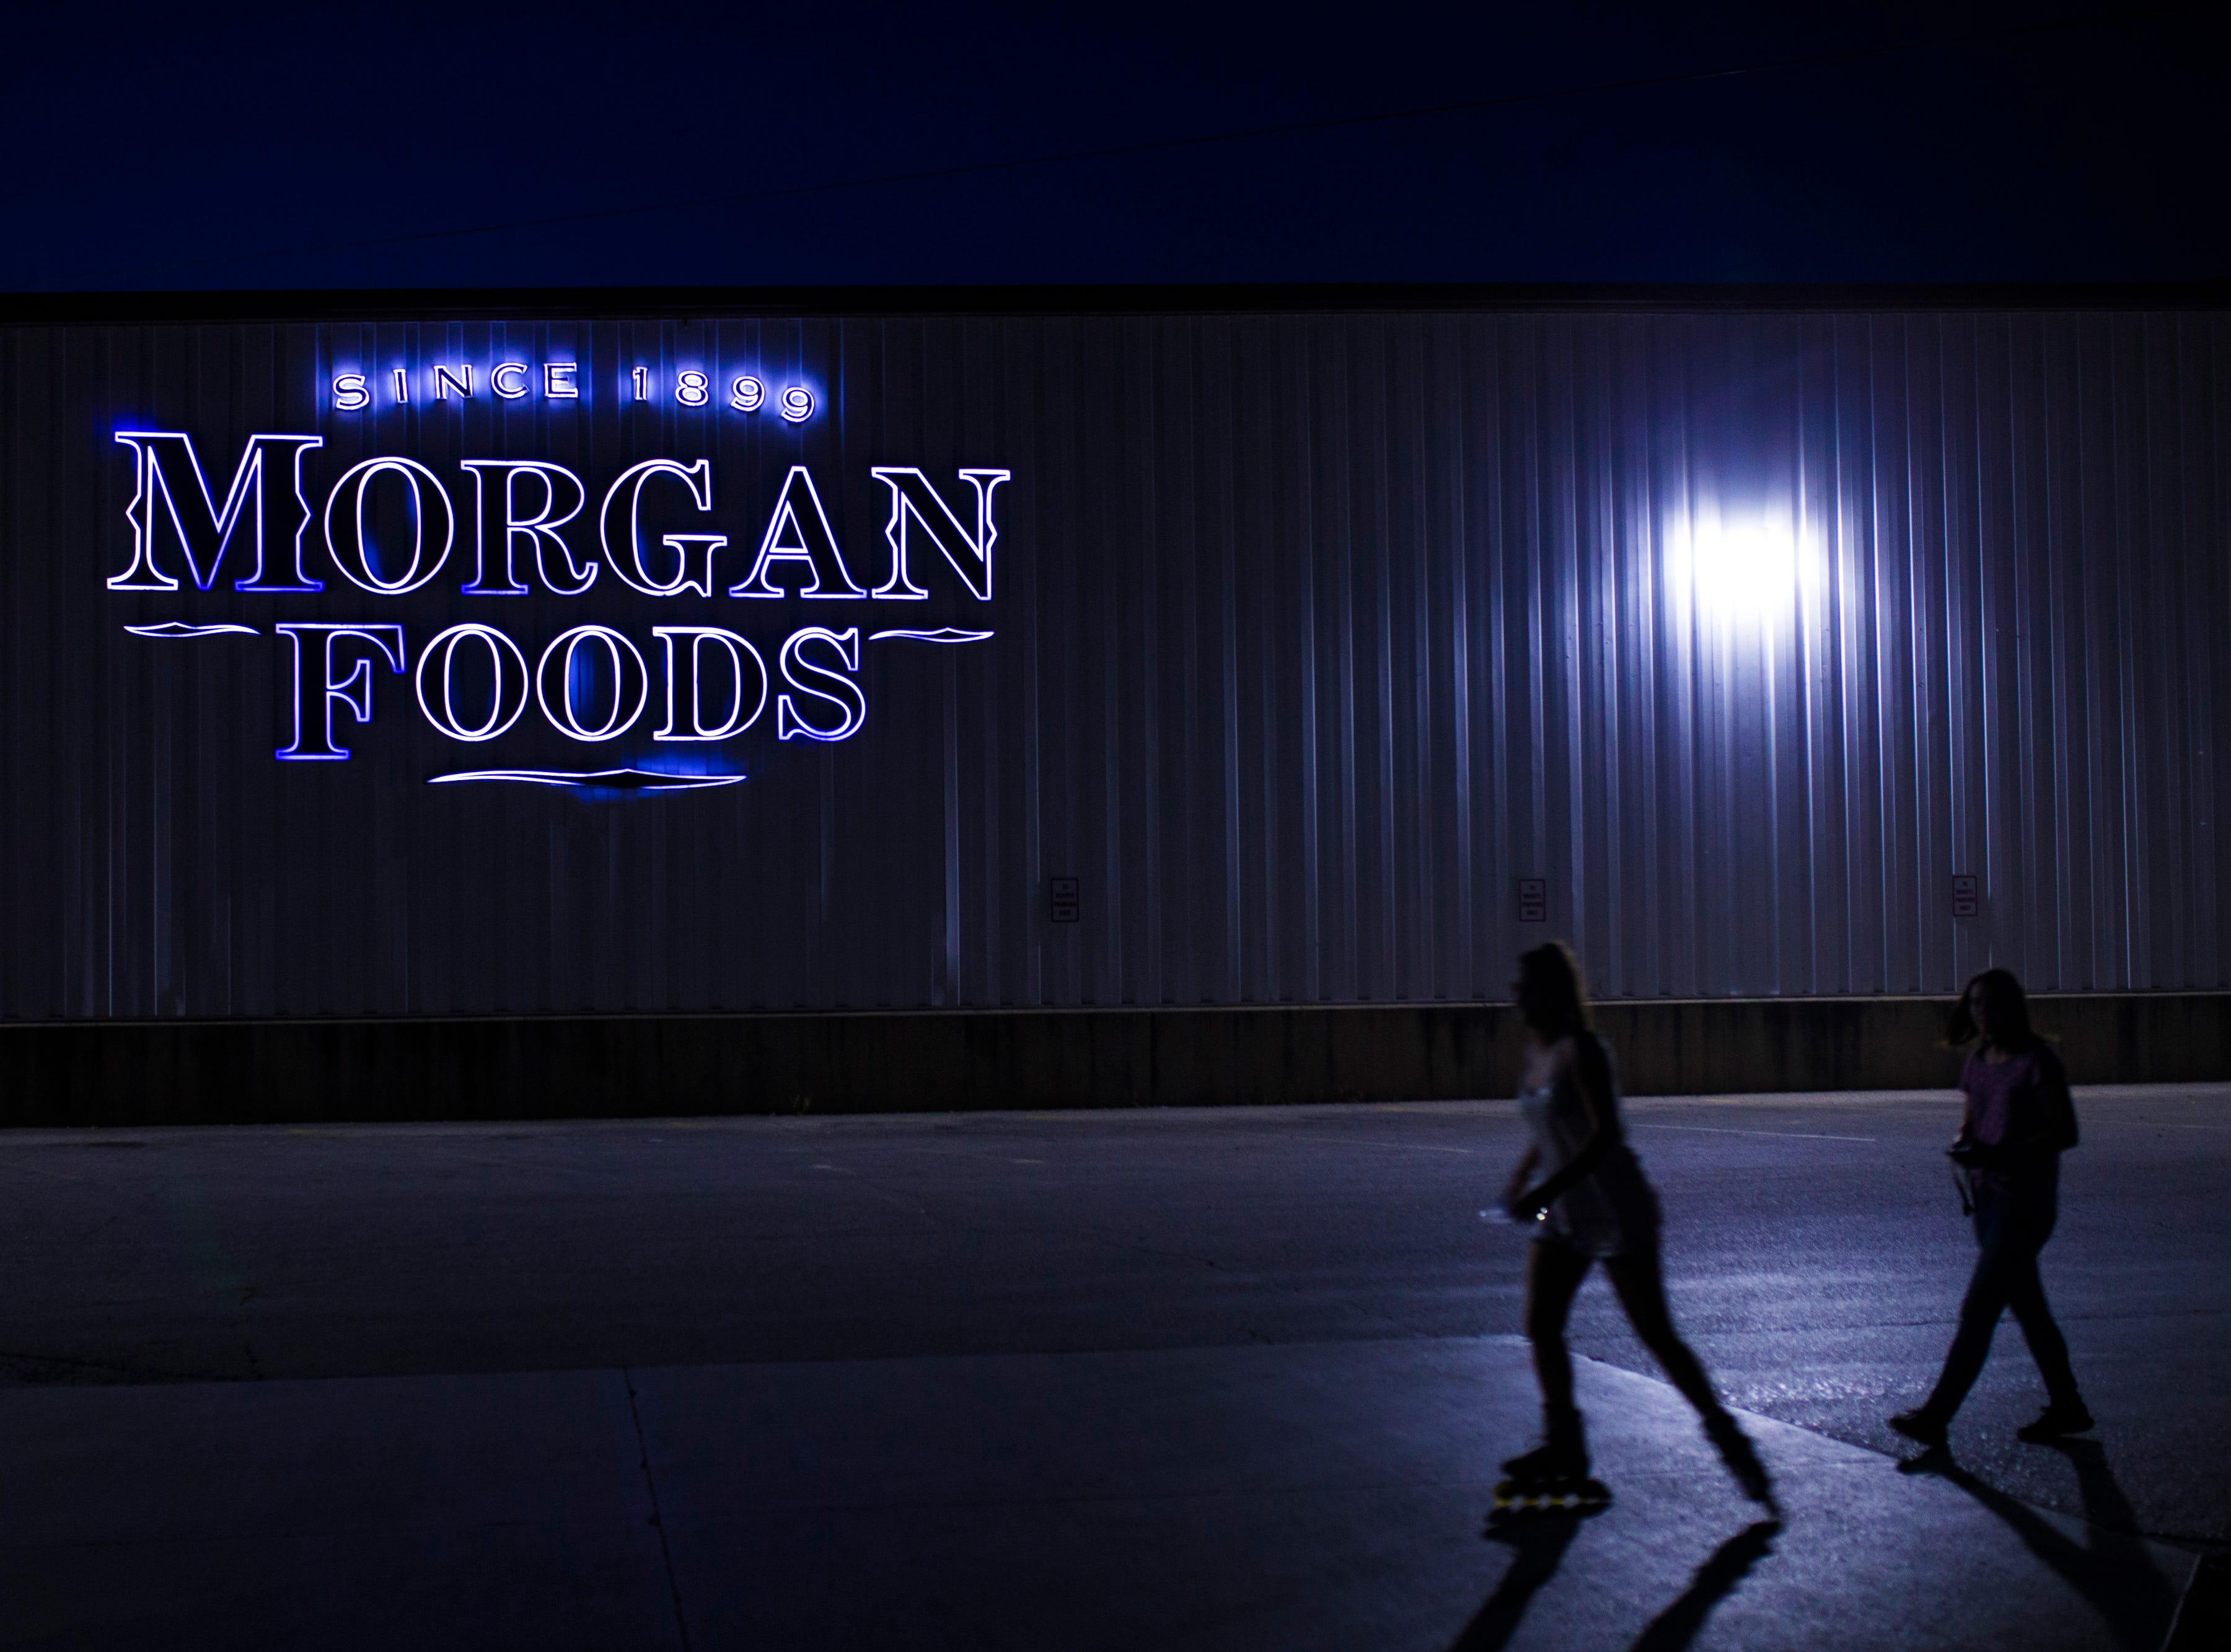 Teenagers make their way past the Morgan Foods canned goods factory in Austin, Indiana at night. Morgan Foods is the largest employer in the small town and has a history in the area going back to 1899. The canning factory is largely responsible for the large influx of Appalachian transplants that came from eastern Kentucky seeking work in the 1960s. As they journeyed from the hills to the flat farm land in rural Indiana, many also brought along generational poverty and low-education which play a role in Austin's HIV and drug epidemics. Aug. 12, 2018